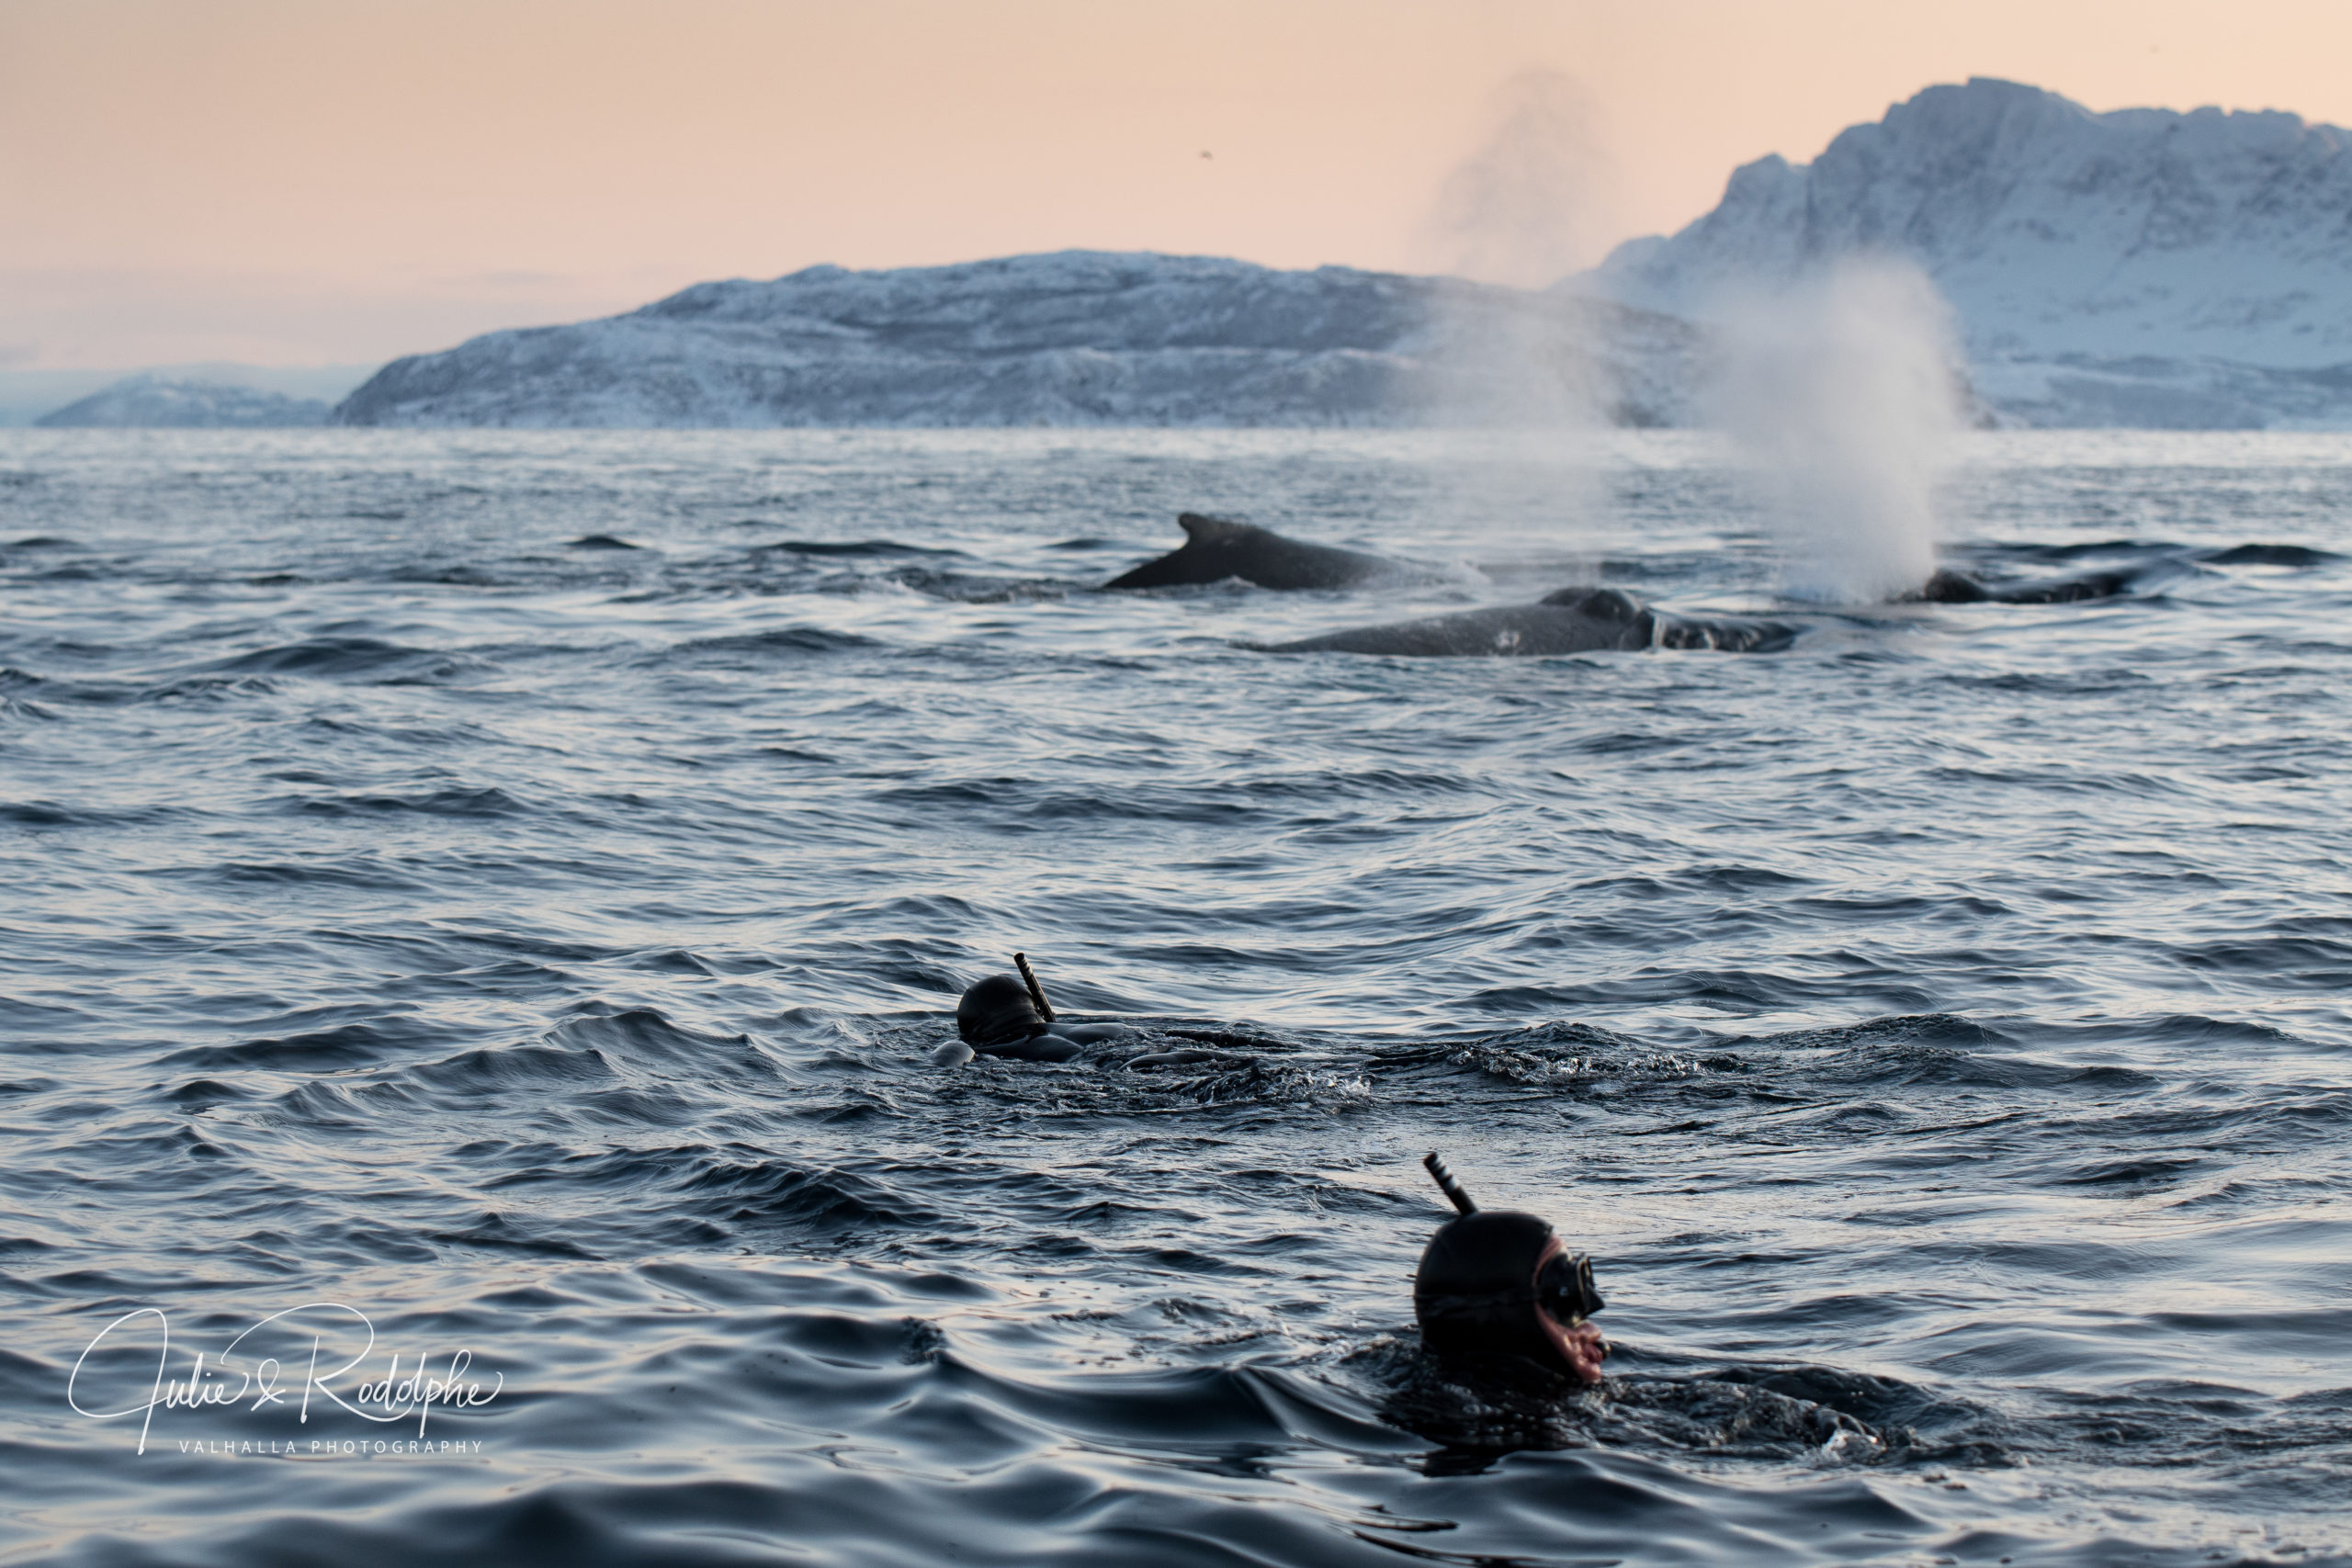 snorkelers in the arctic sea looking at whales blows